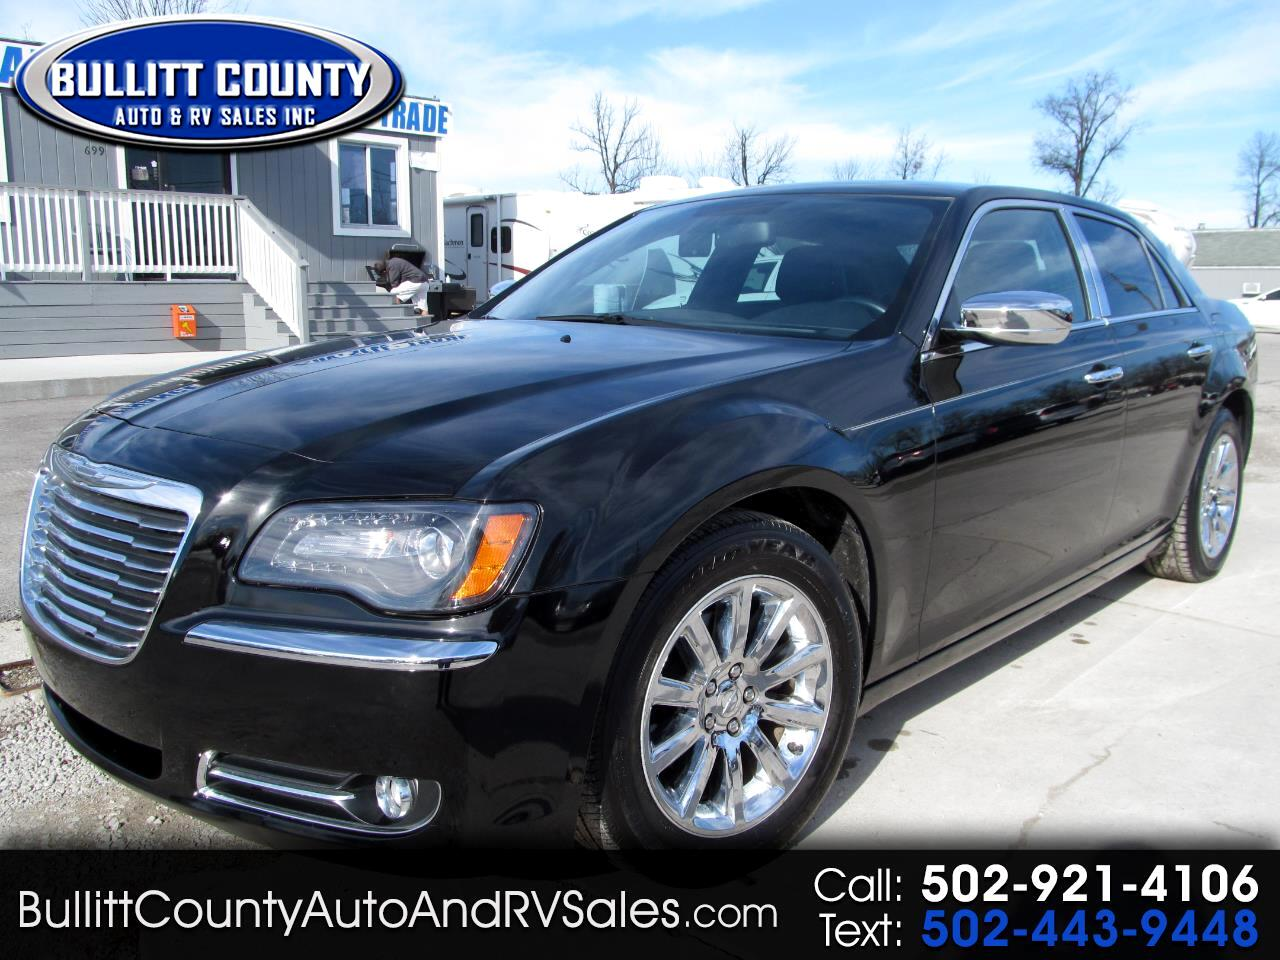 2012 Chrysler 300 4dr Sdn V6 Limited RWD